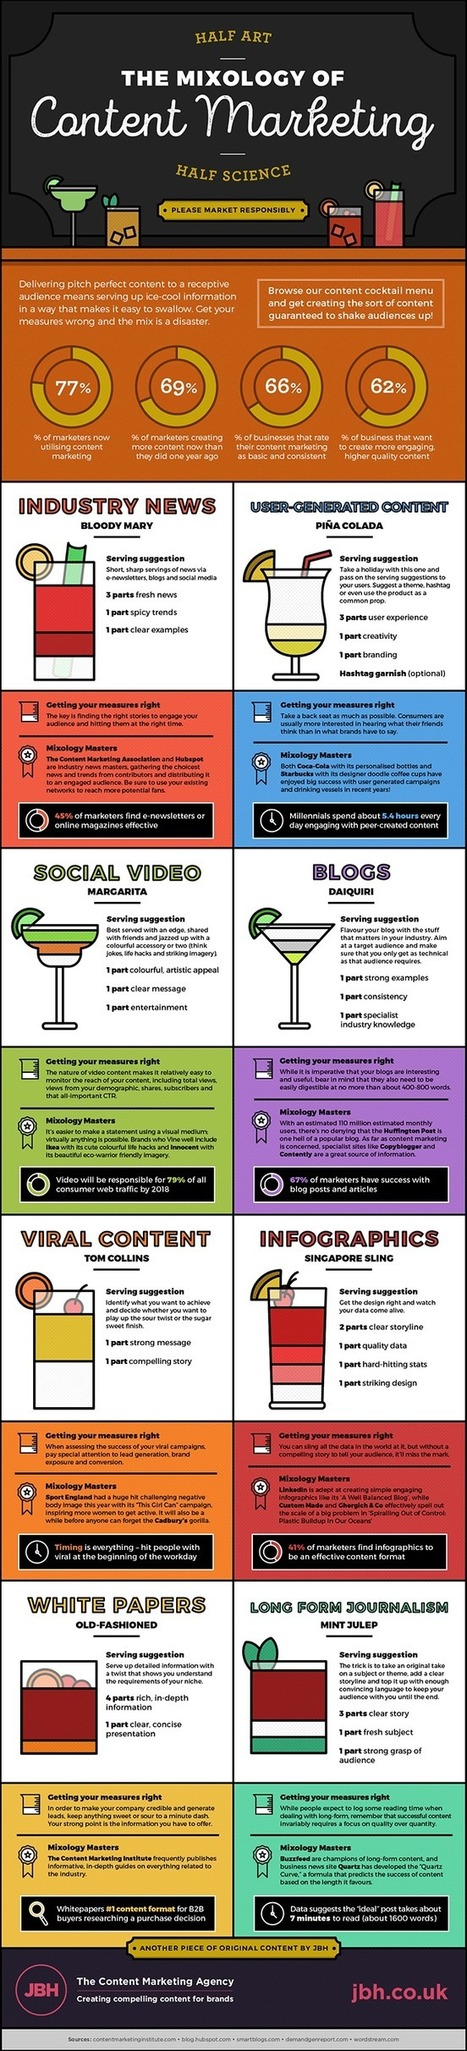 The Perfect Content Marketing Mix [Infographic] | Content Marketing & Content Strategy | Scoop.it